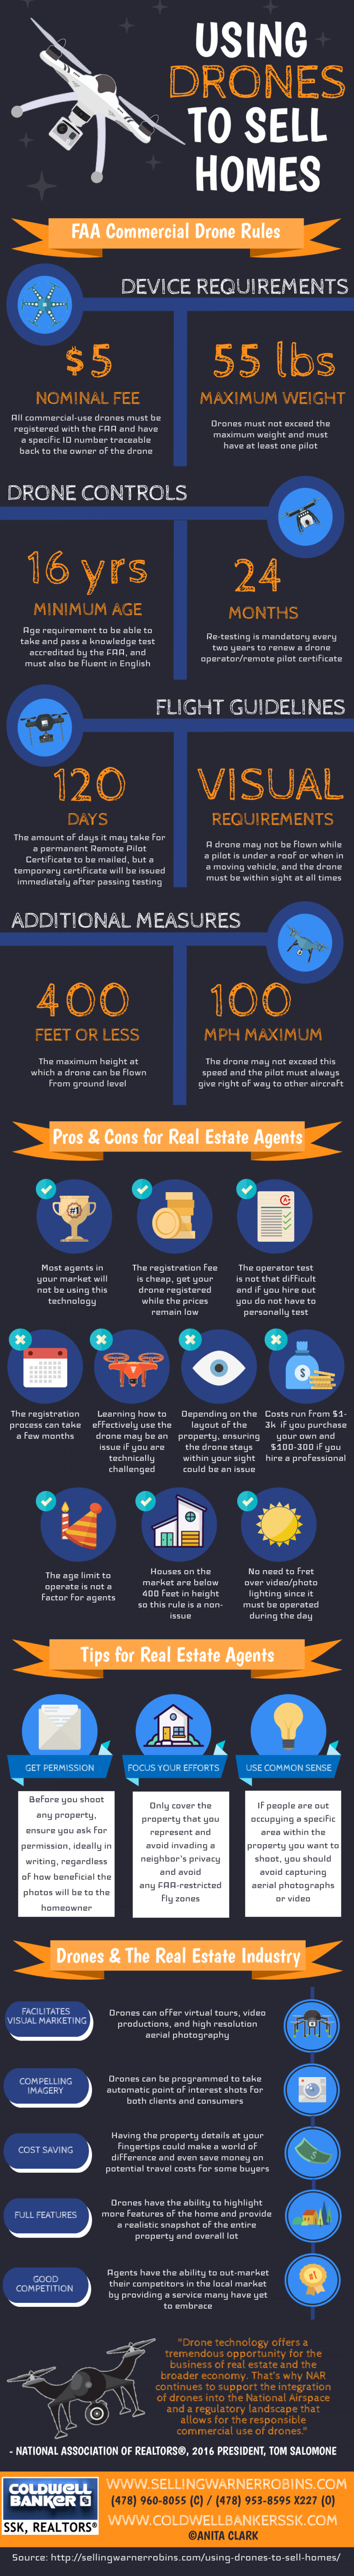 Using Drones to Sell Homes Infographic